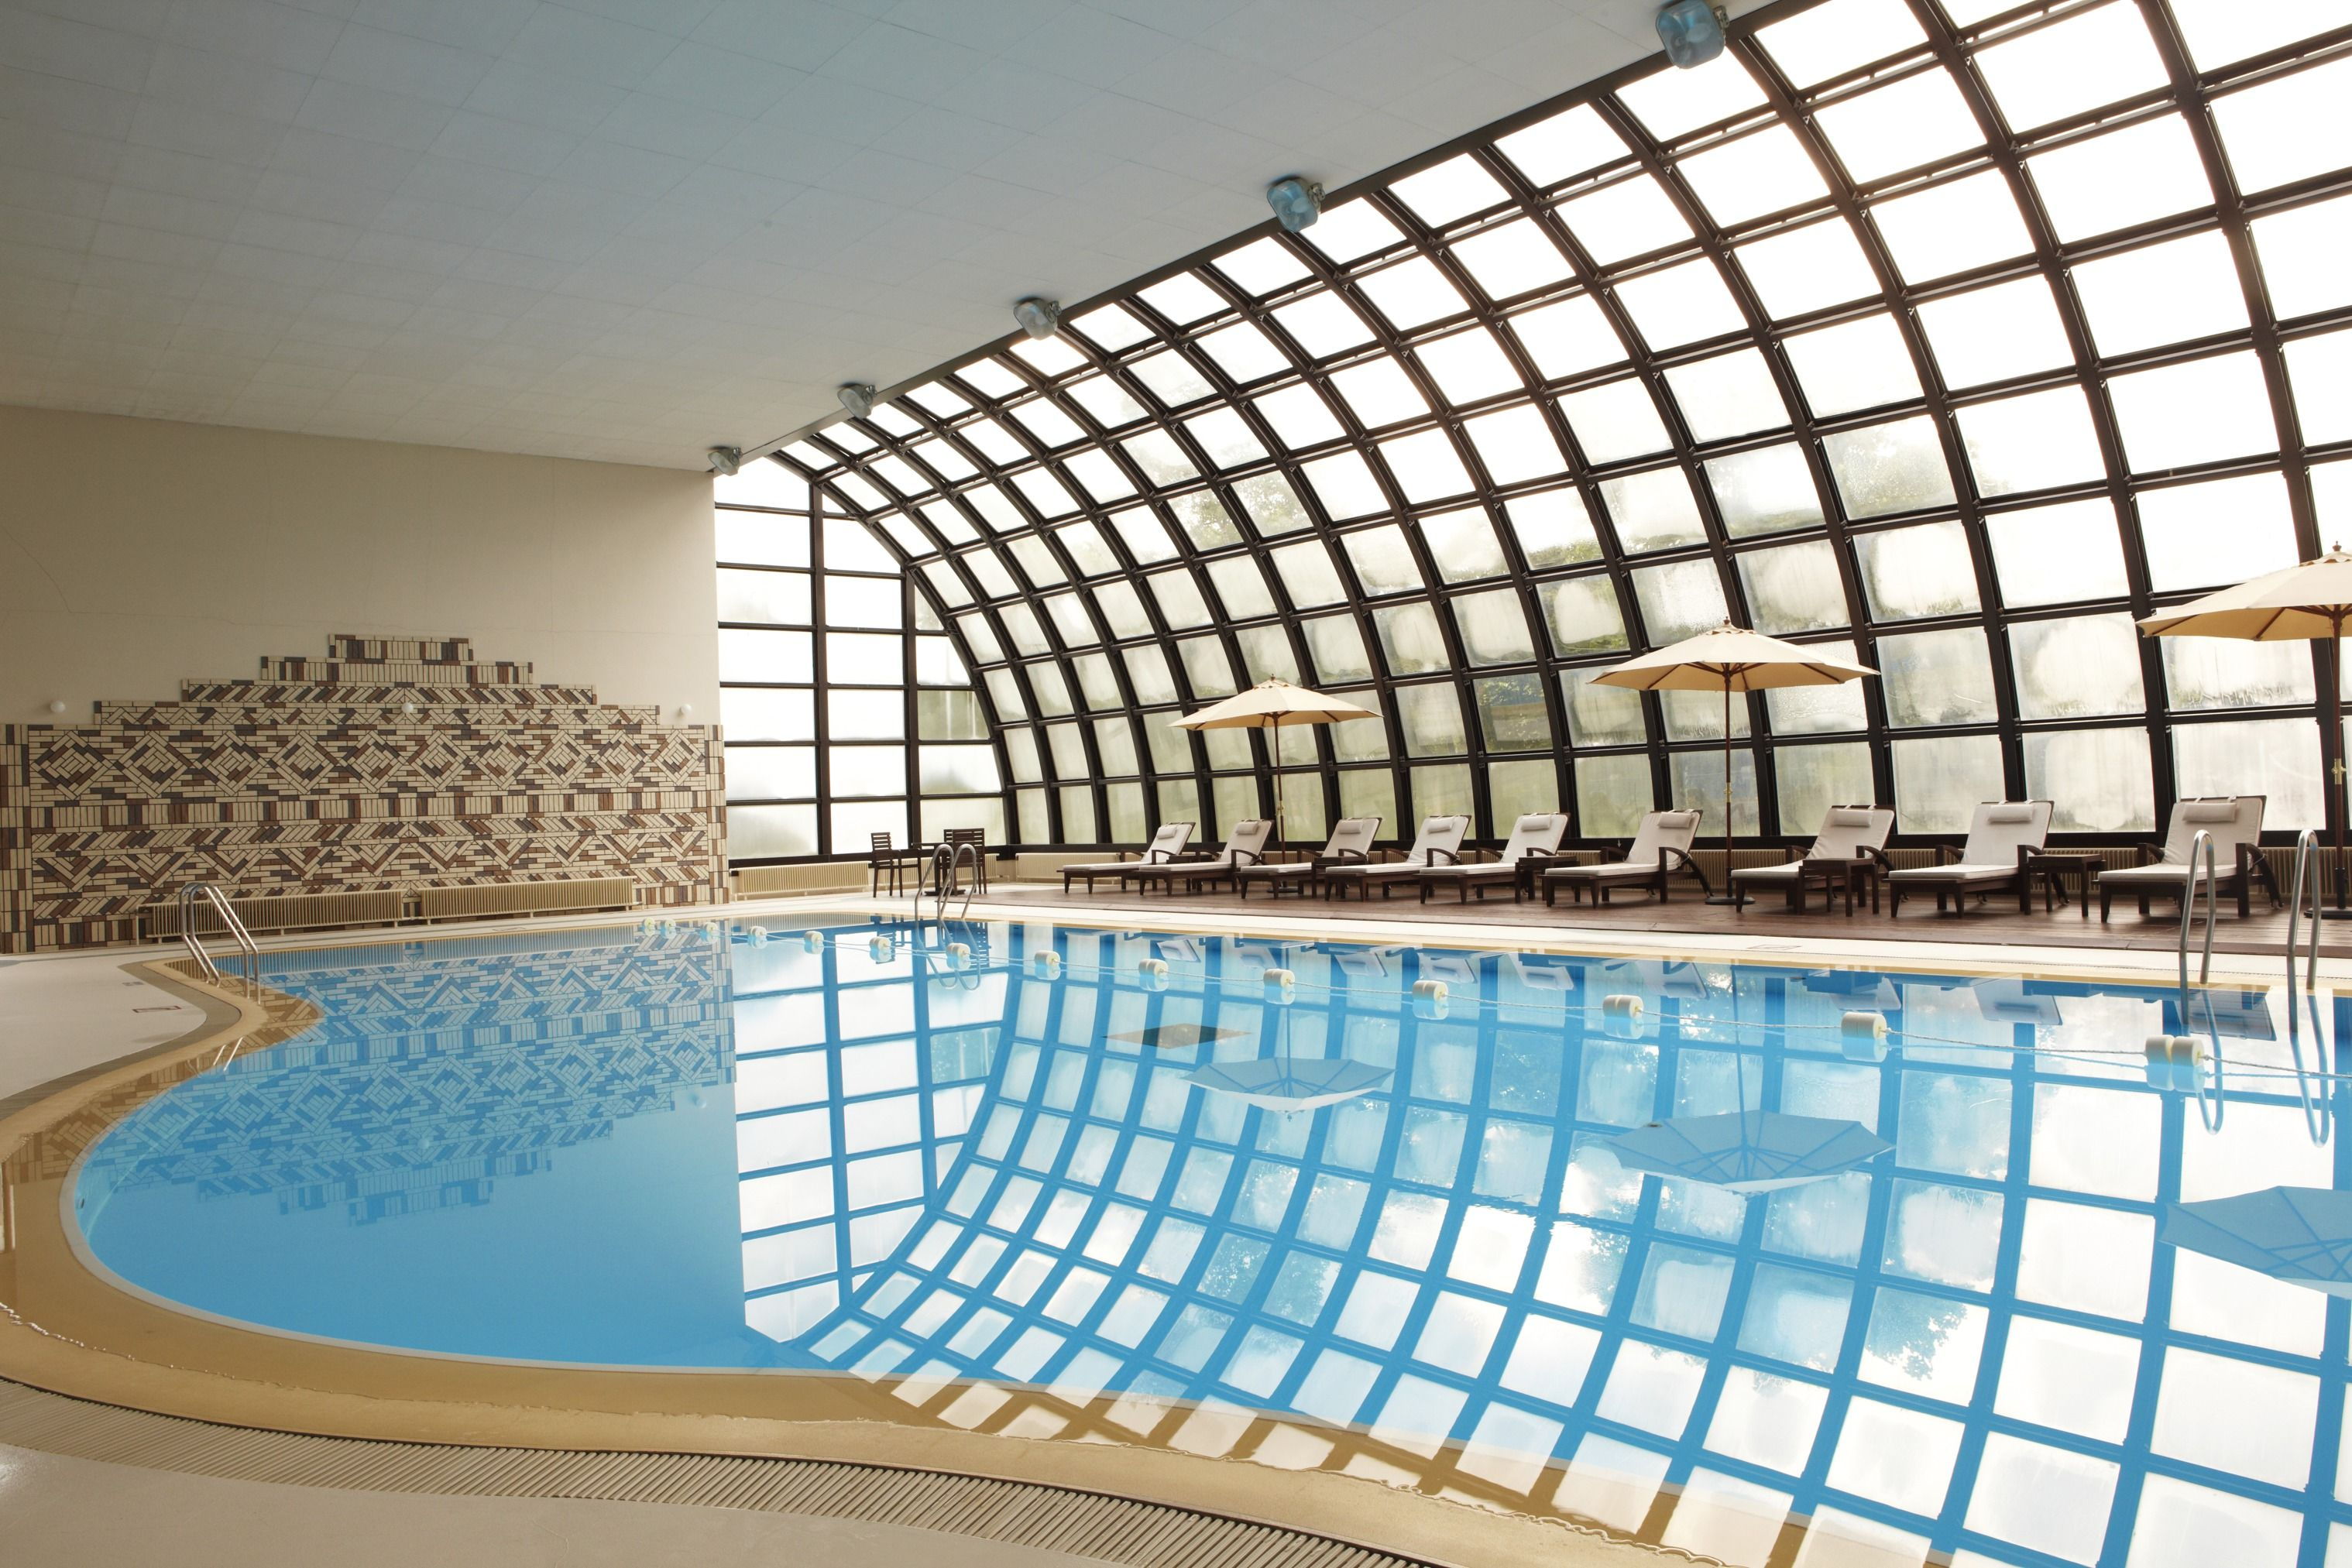 The Heated Indoor Swimming Pool At Club Med Hokkaido Features